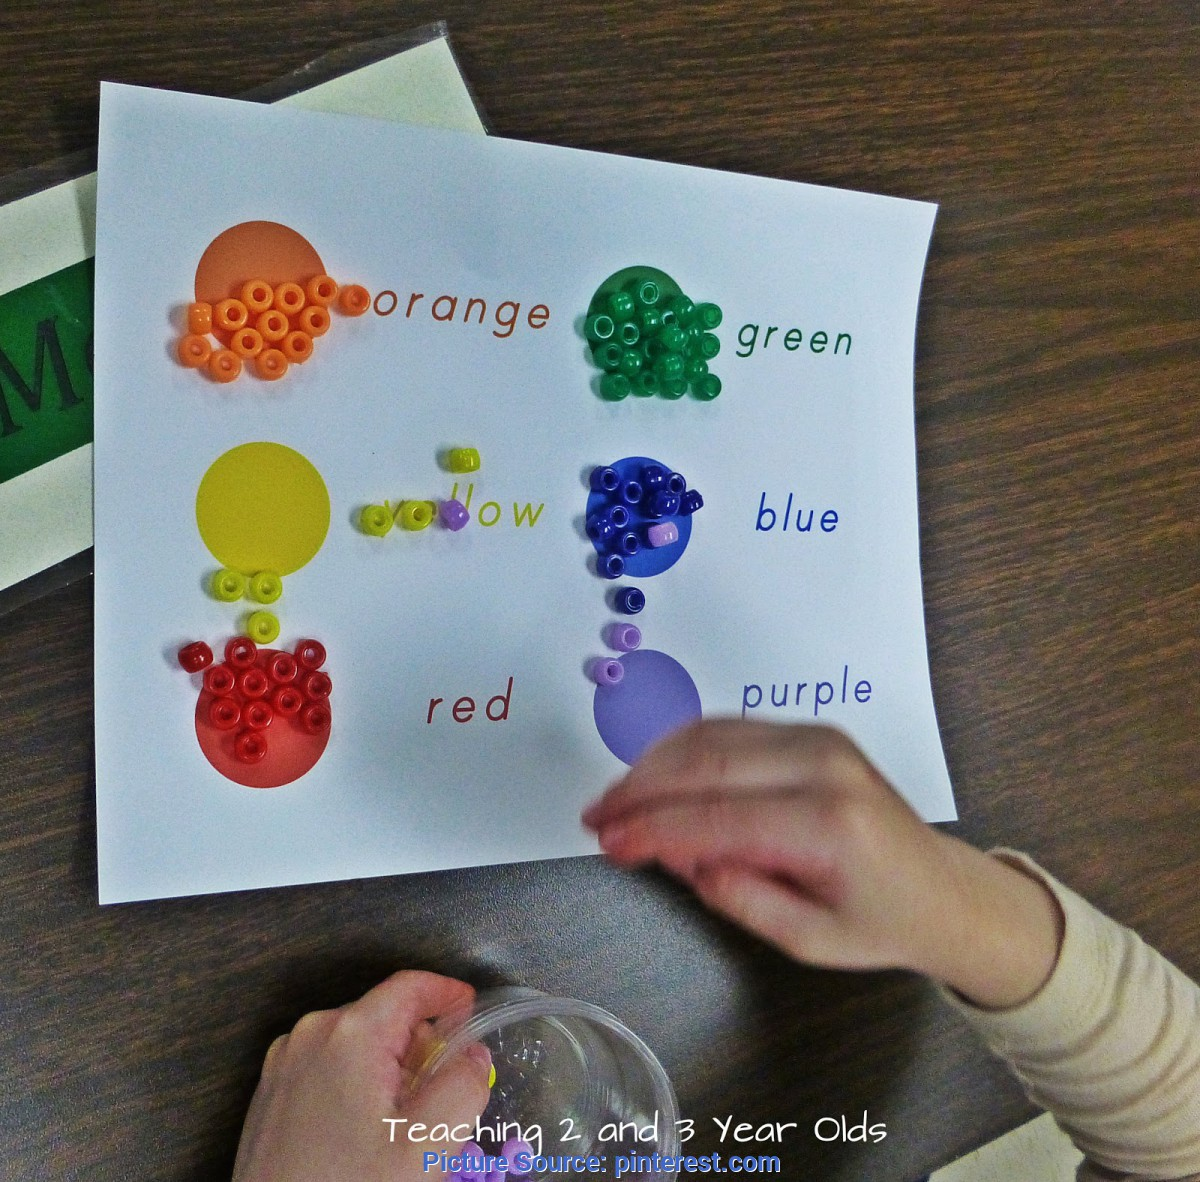 Fresh Learning Lessons For 2 Year Olds Teaching 2 And 3 Year Olds: 2 Year Olds   2-3 Year Old Preschoo